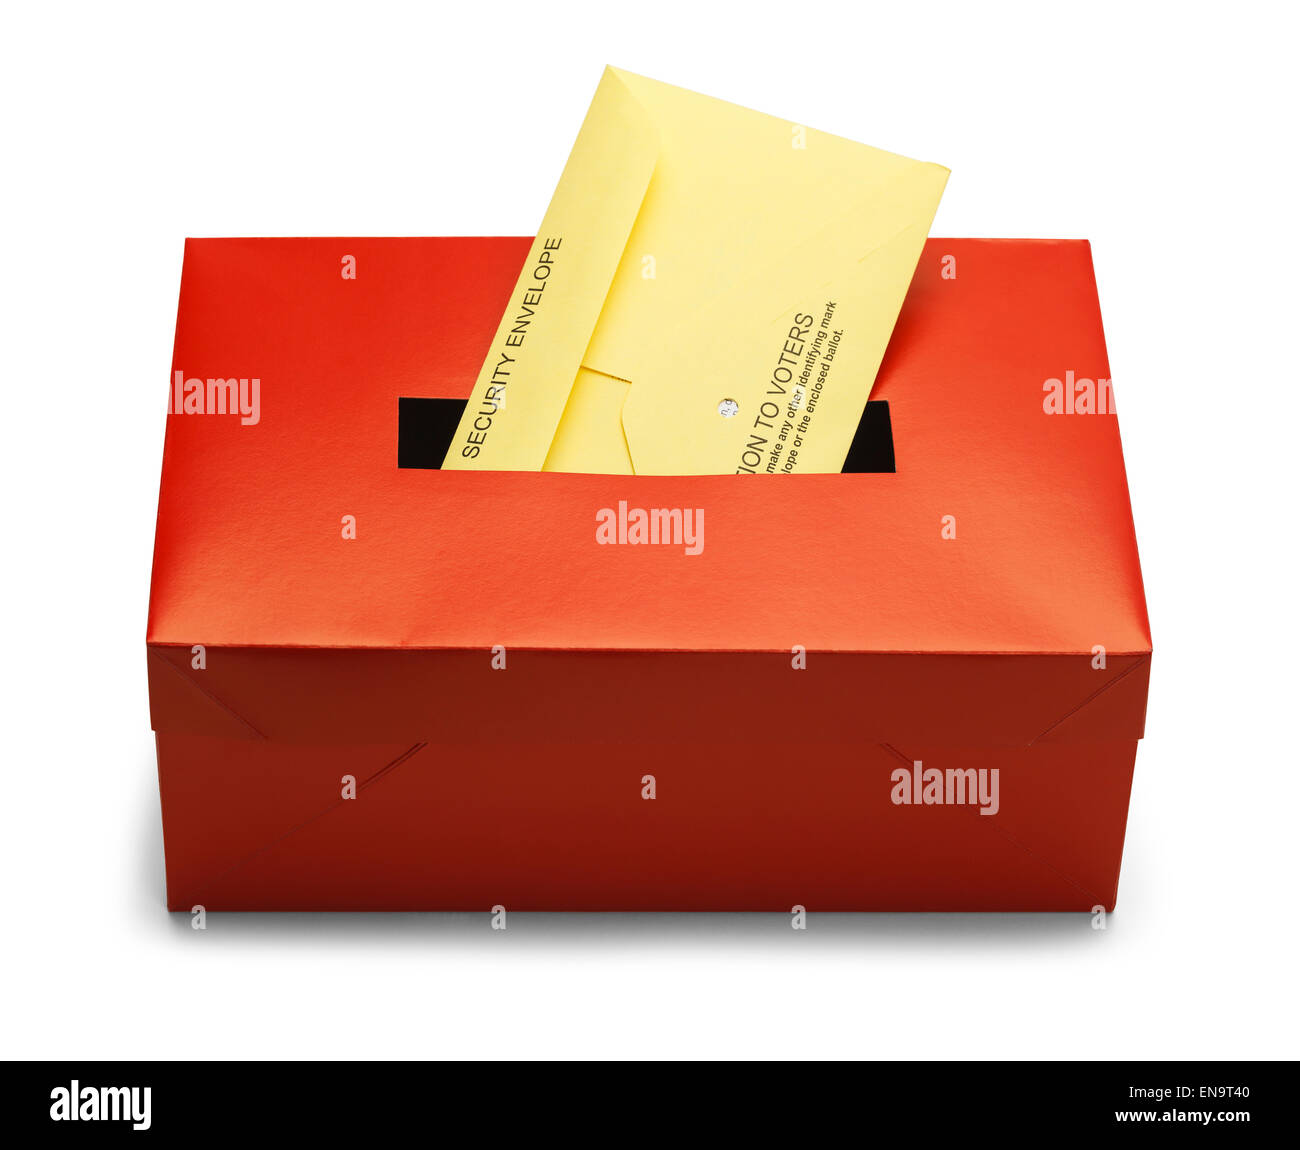 Voting Box with Security Envelope Isolated on White Background. - Stock Image